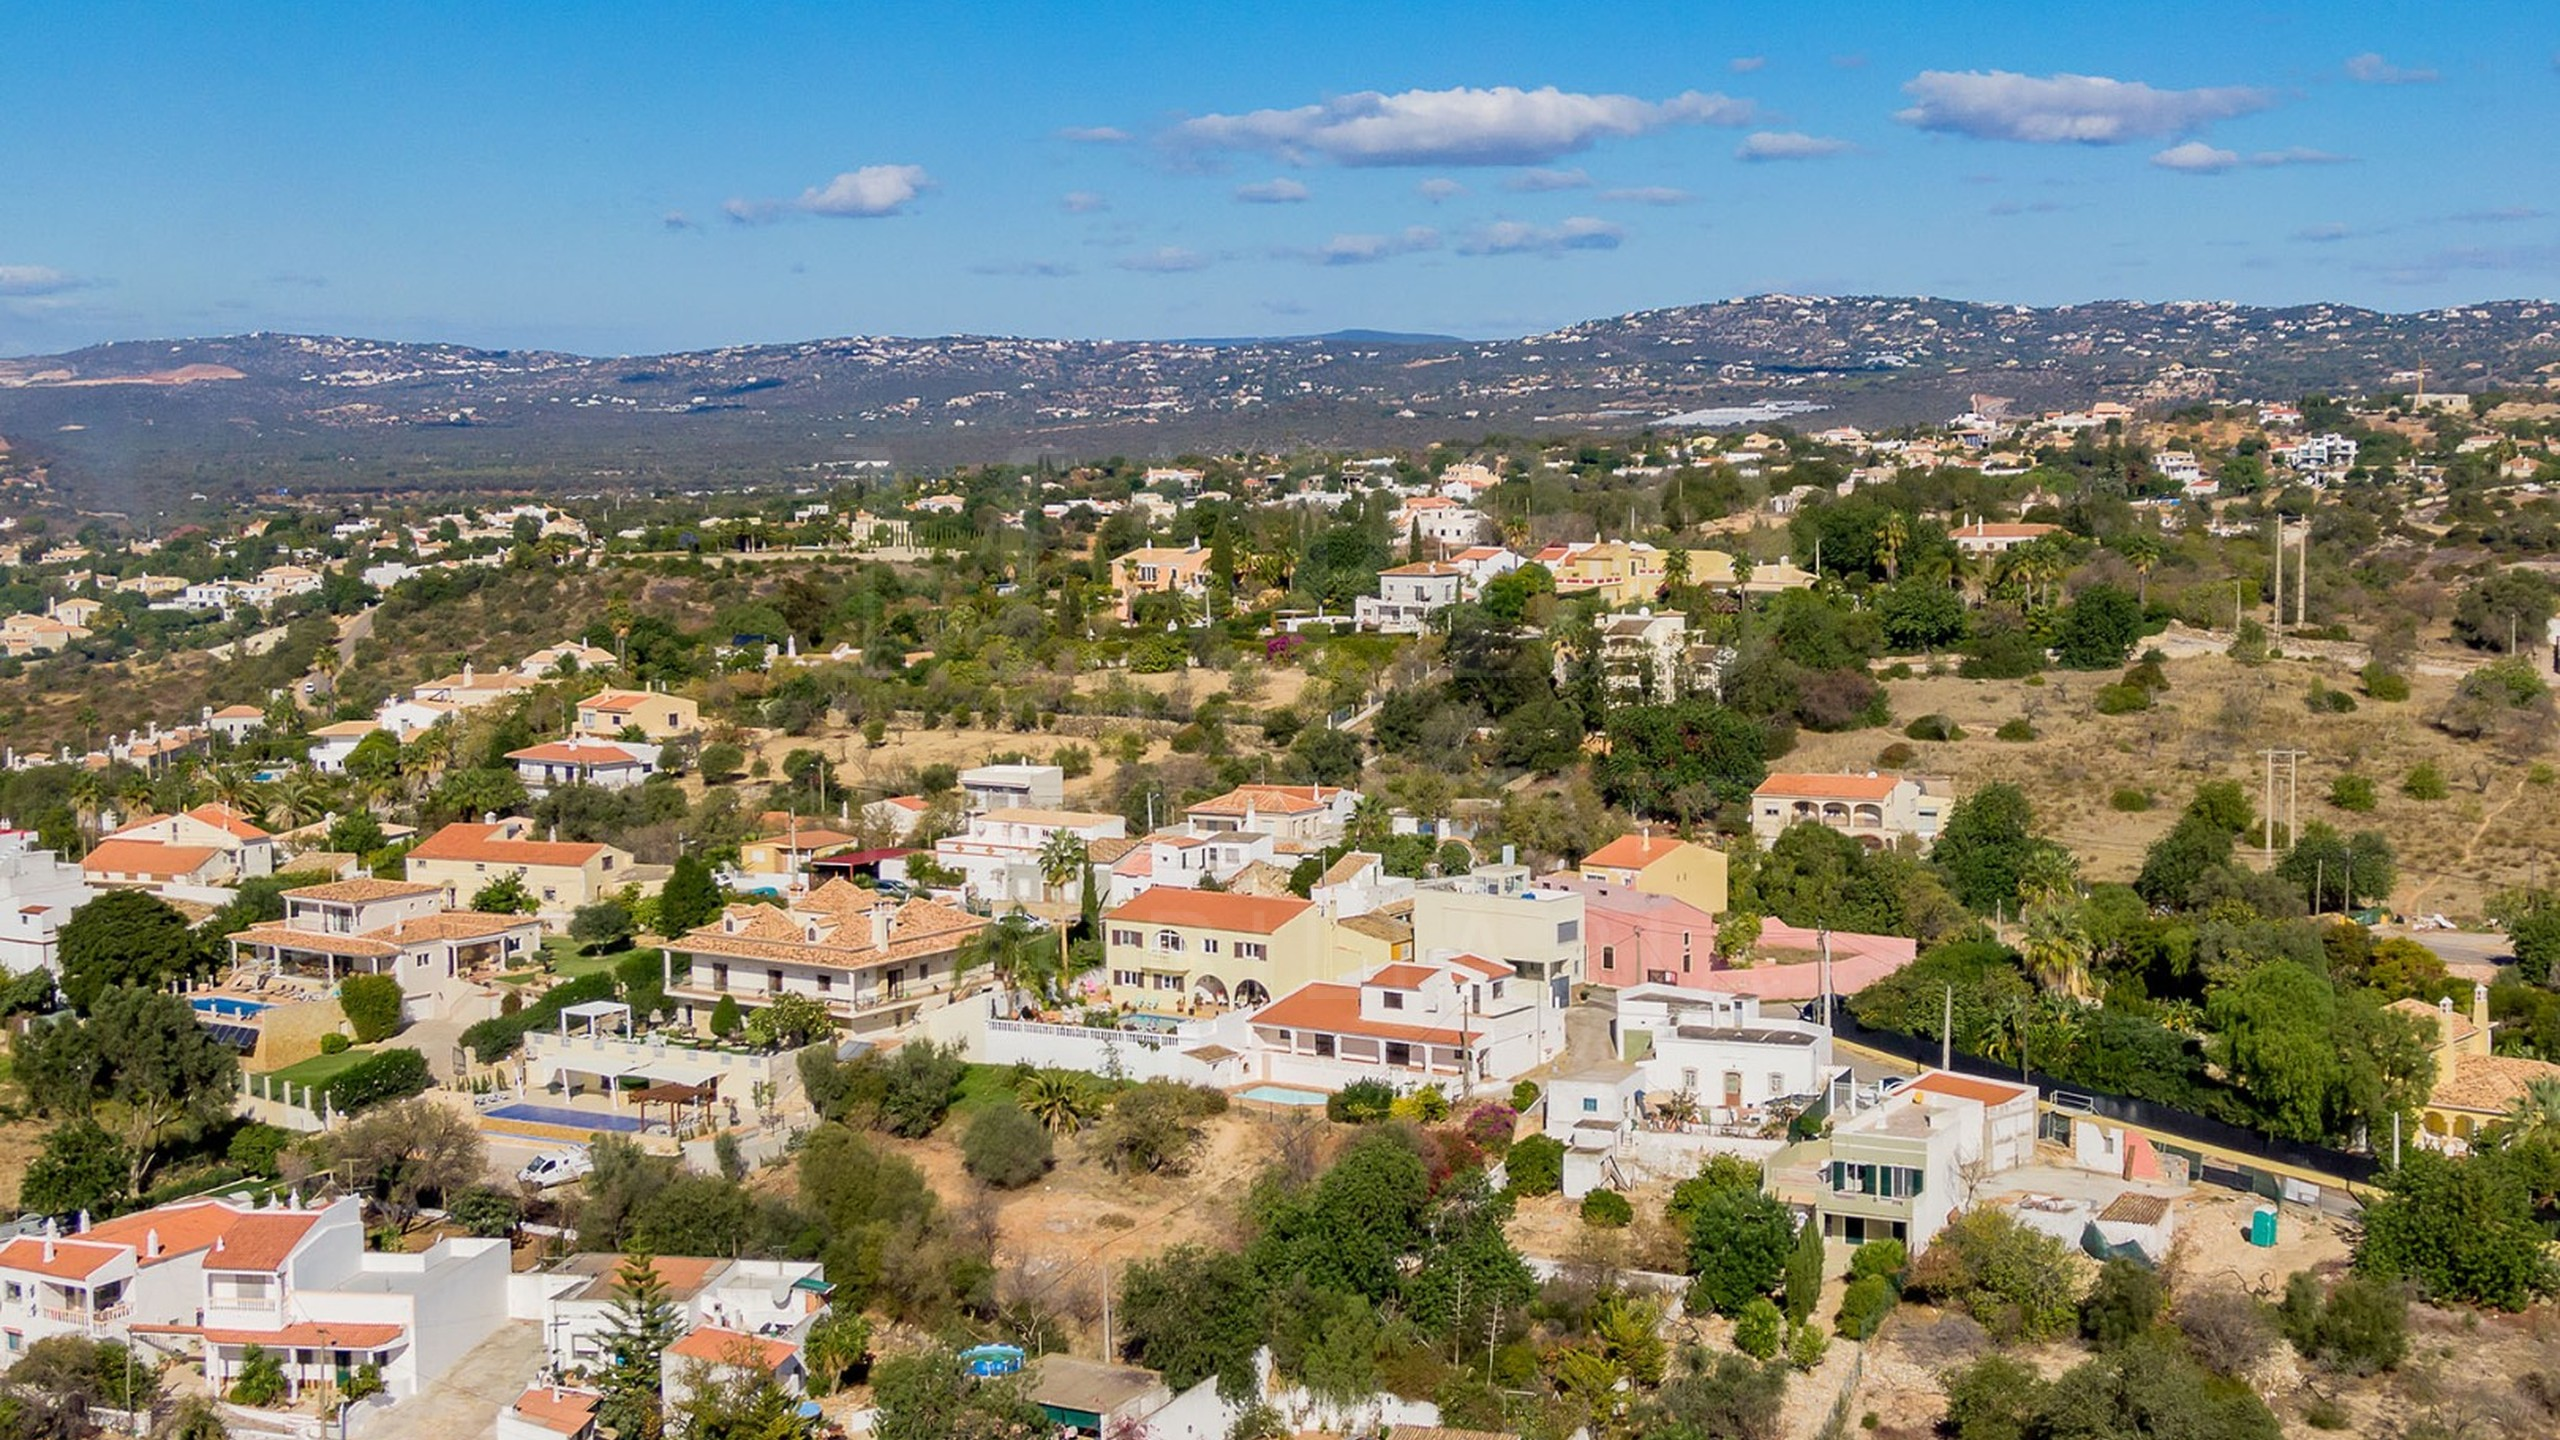 Plot for sale in the countryside of Algarve